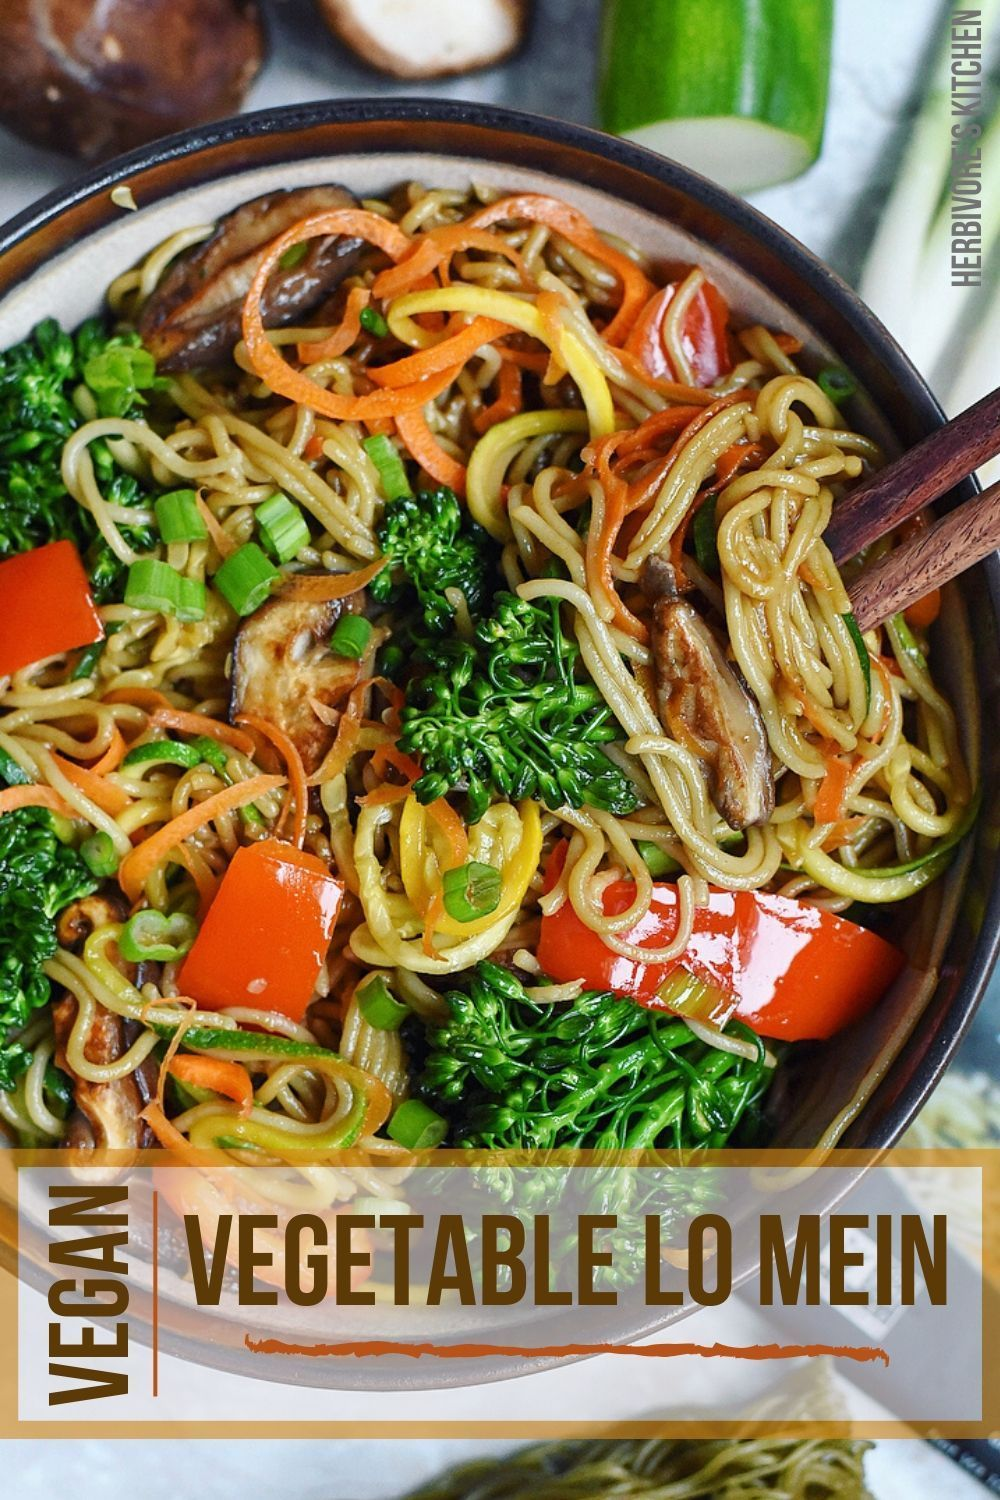 Vegetable Lo Mein The Ultimate Vegan Chinese Food Recipe In 2020 Vegan Chinese Food Gluten Free Chinese Food Vegan Chinese